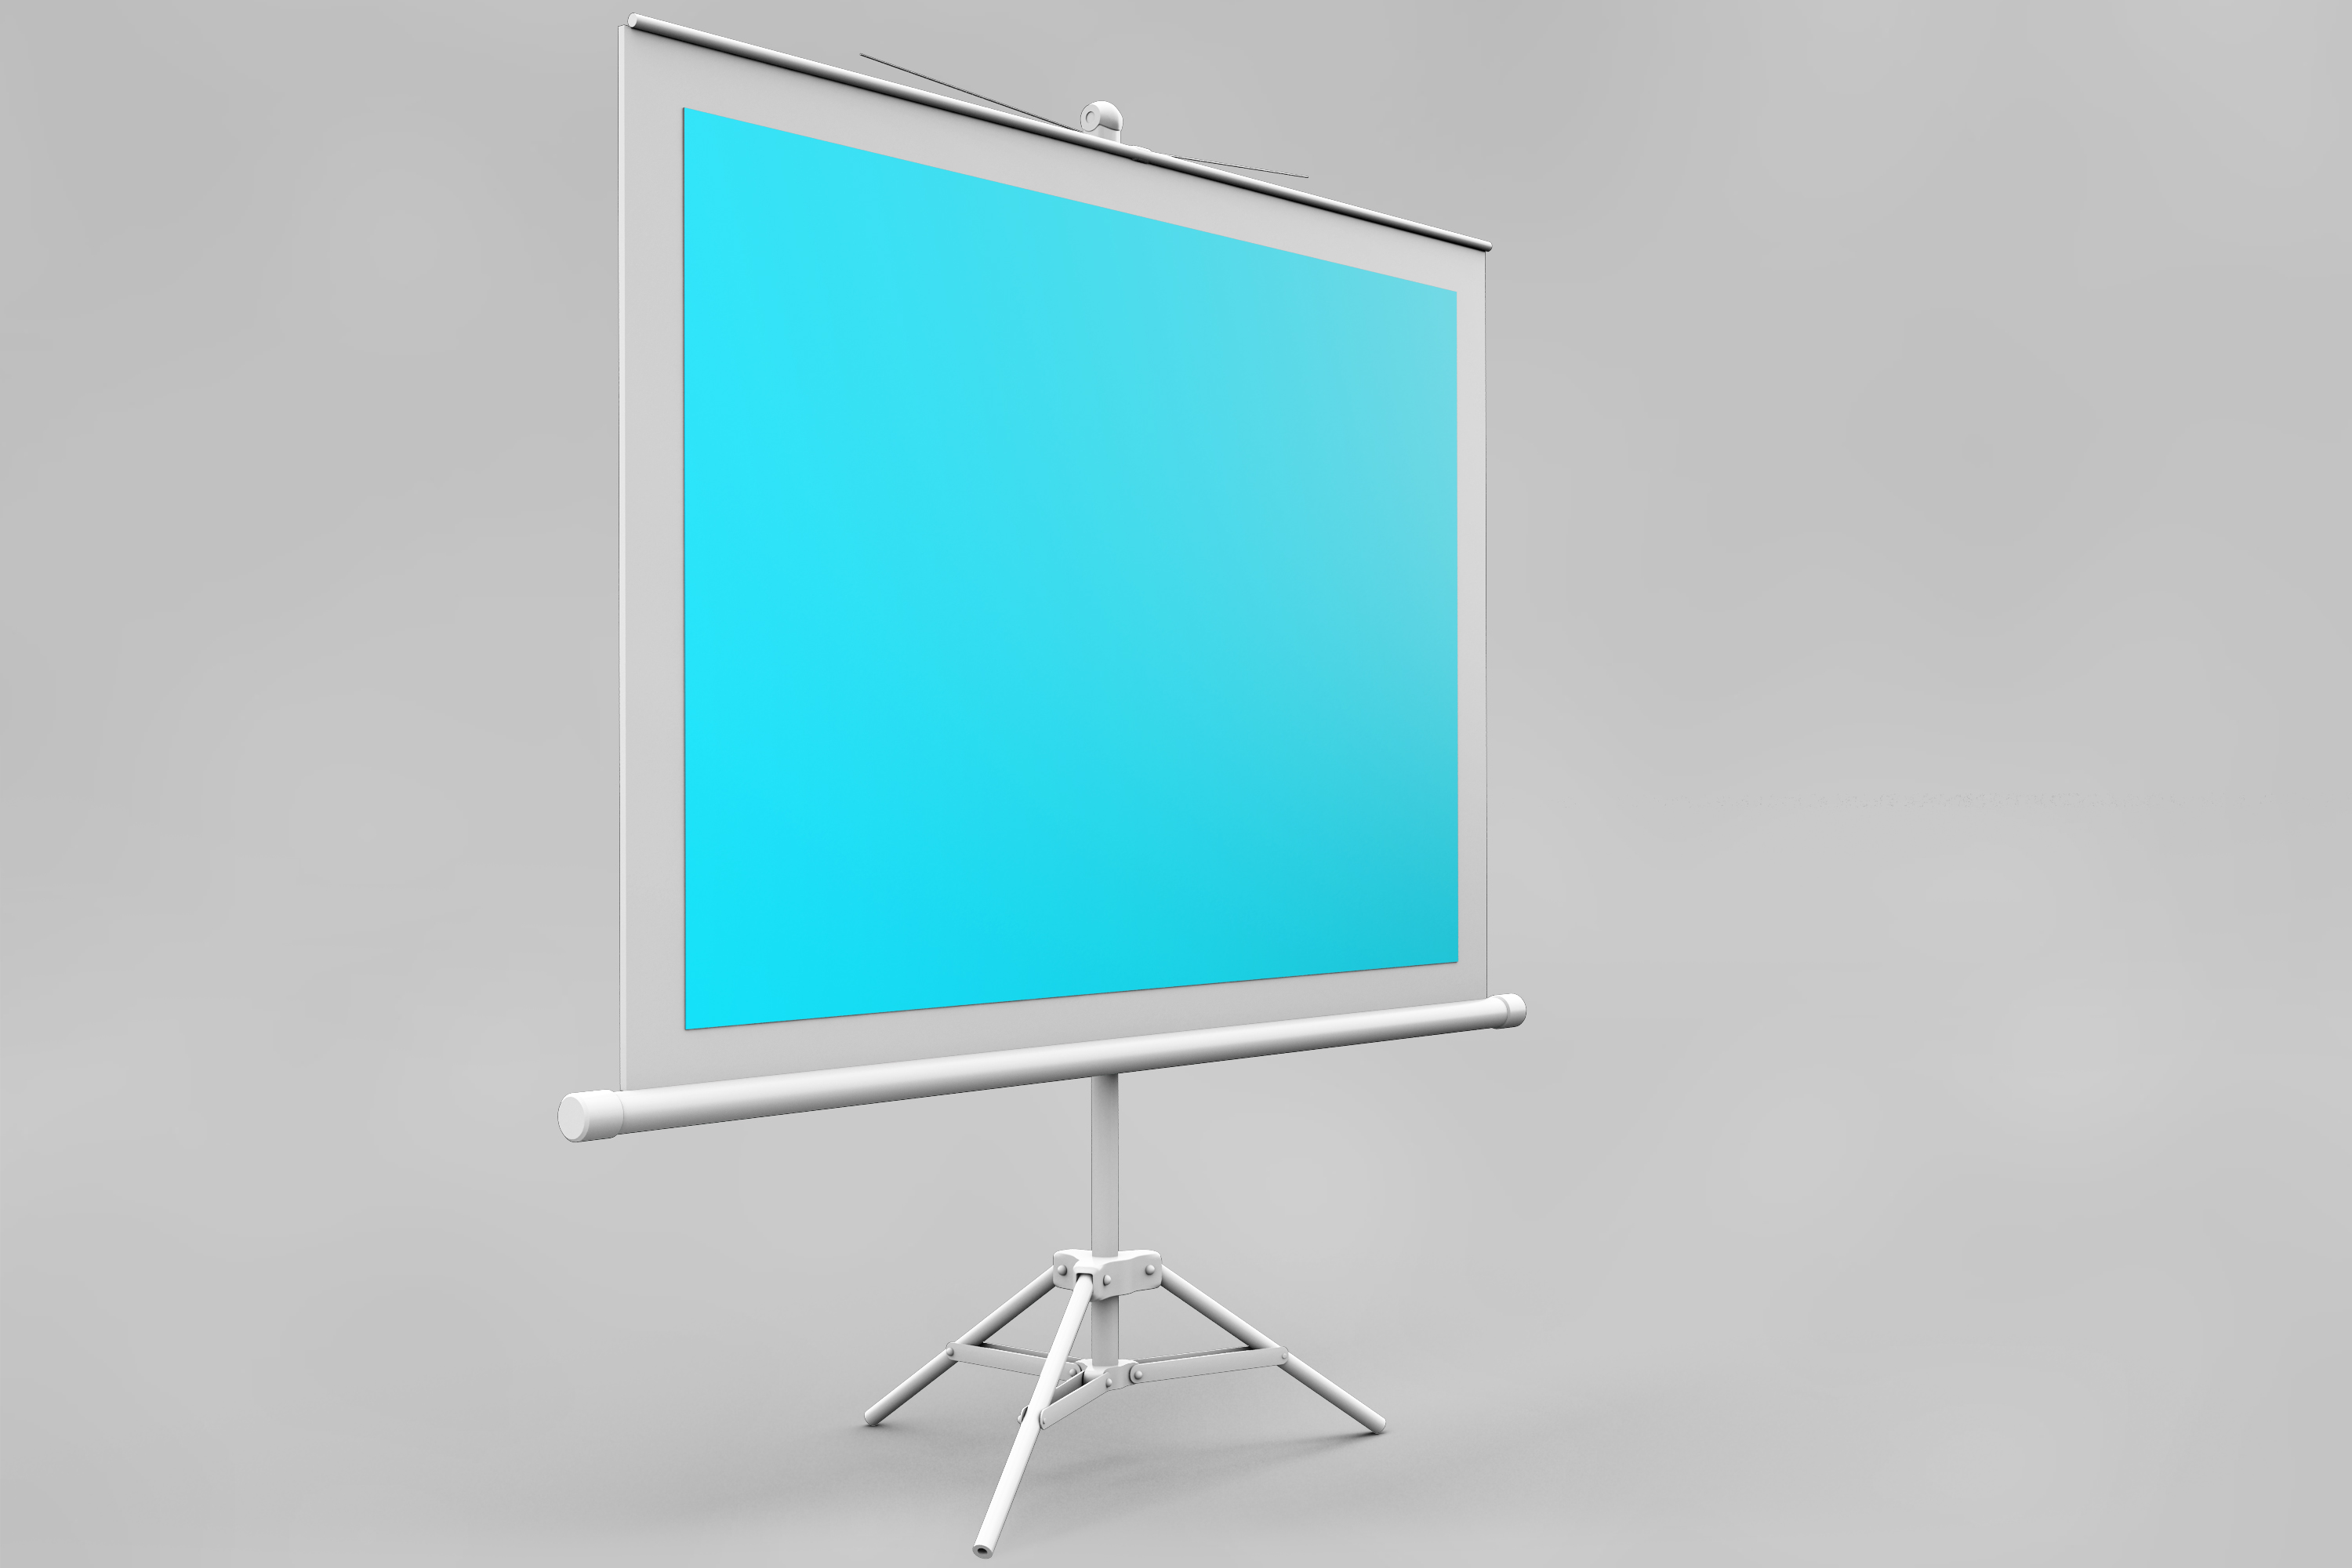 Projector Screen MockUp example image 6